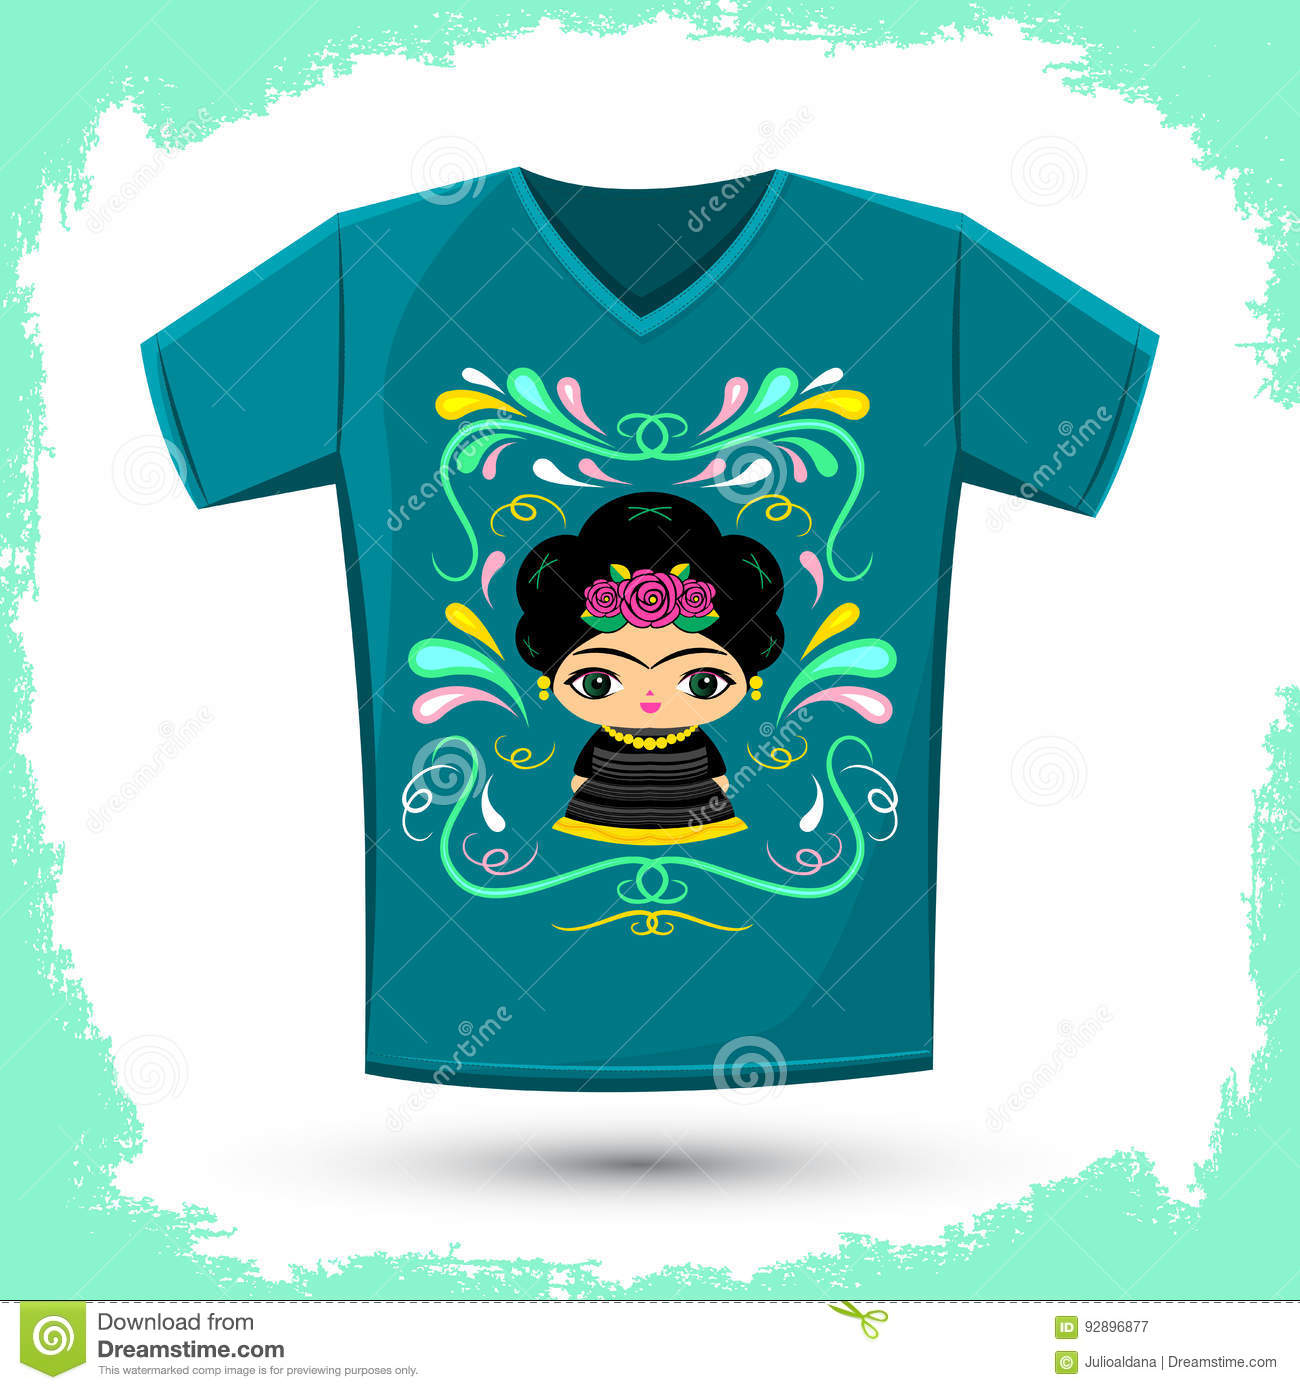 Mexican doll with decorative ornaments t shirt vector for T shirt and hat printing